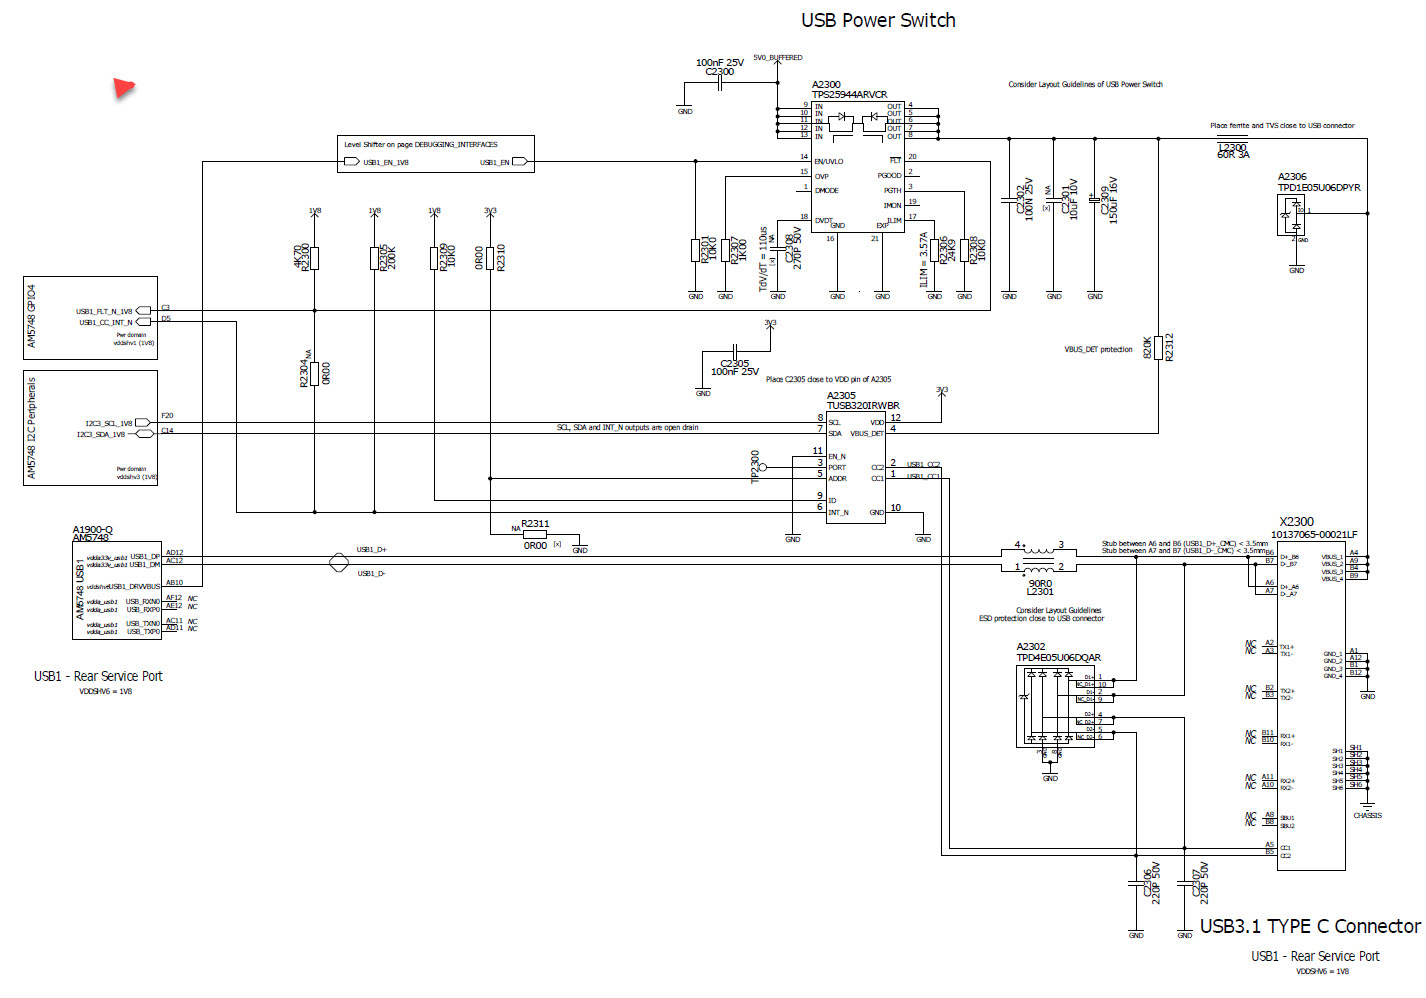 Linux/AM5748: USB-C device mode with g_ether not working ... on led schematic, simple fm transmitter schematic, hdmi schematic, gps schematic, battery schematic, jtag schematic, audio schematic, camera schematic, bluetooth schematic, nand schematic, lcd schematic, headphone schematic,